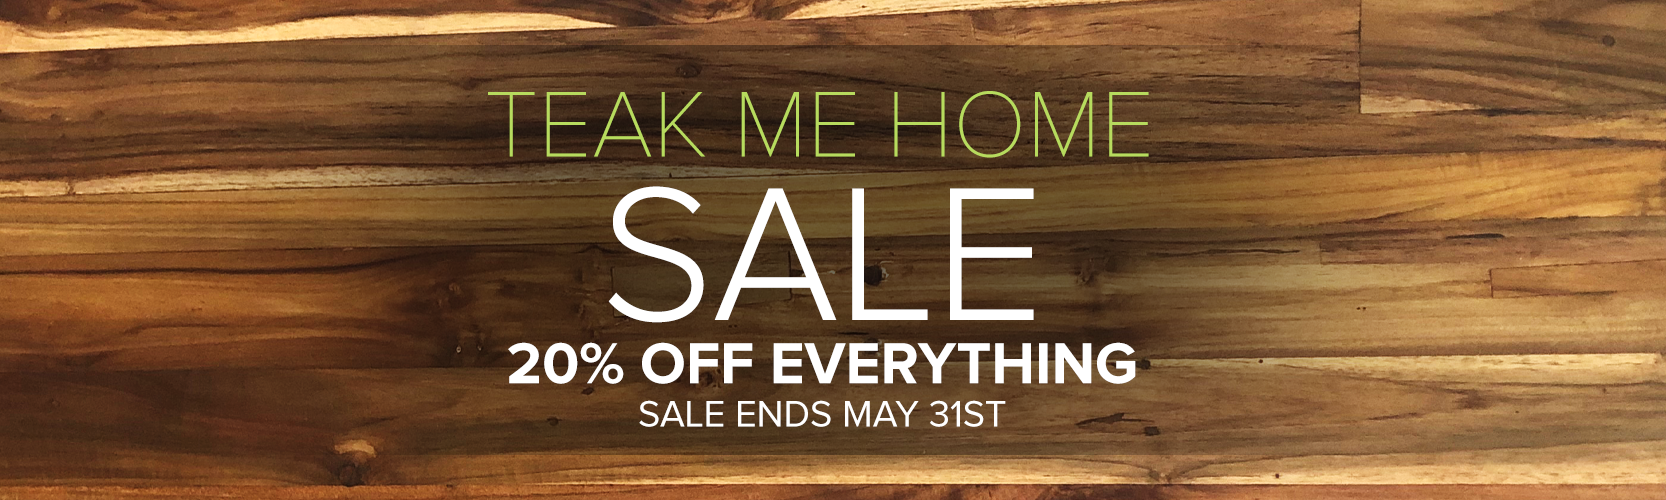 20% Off Everything Sale